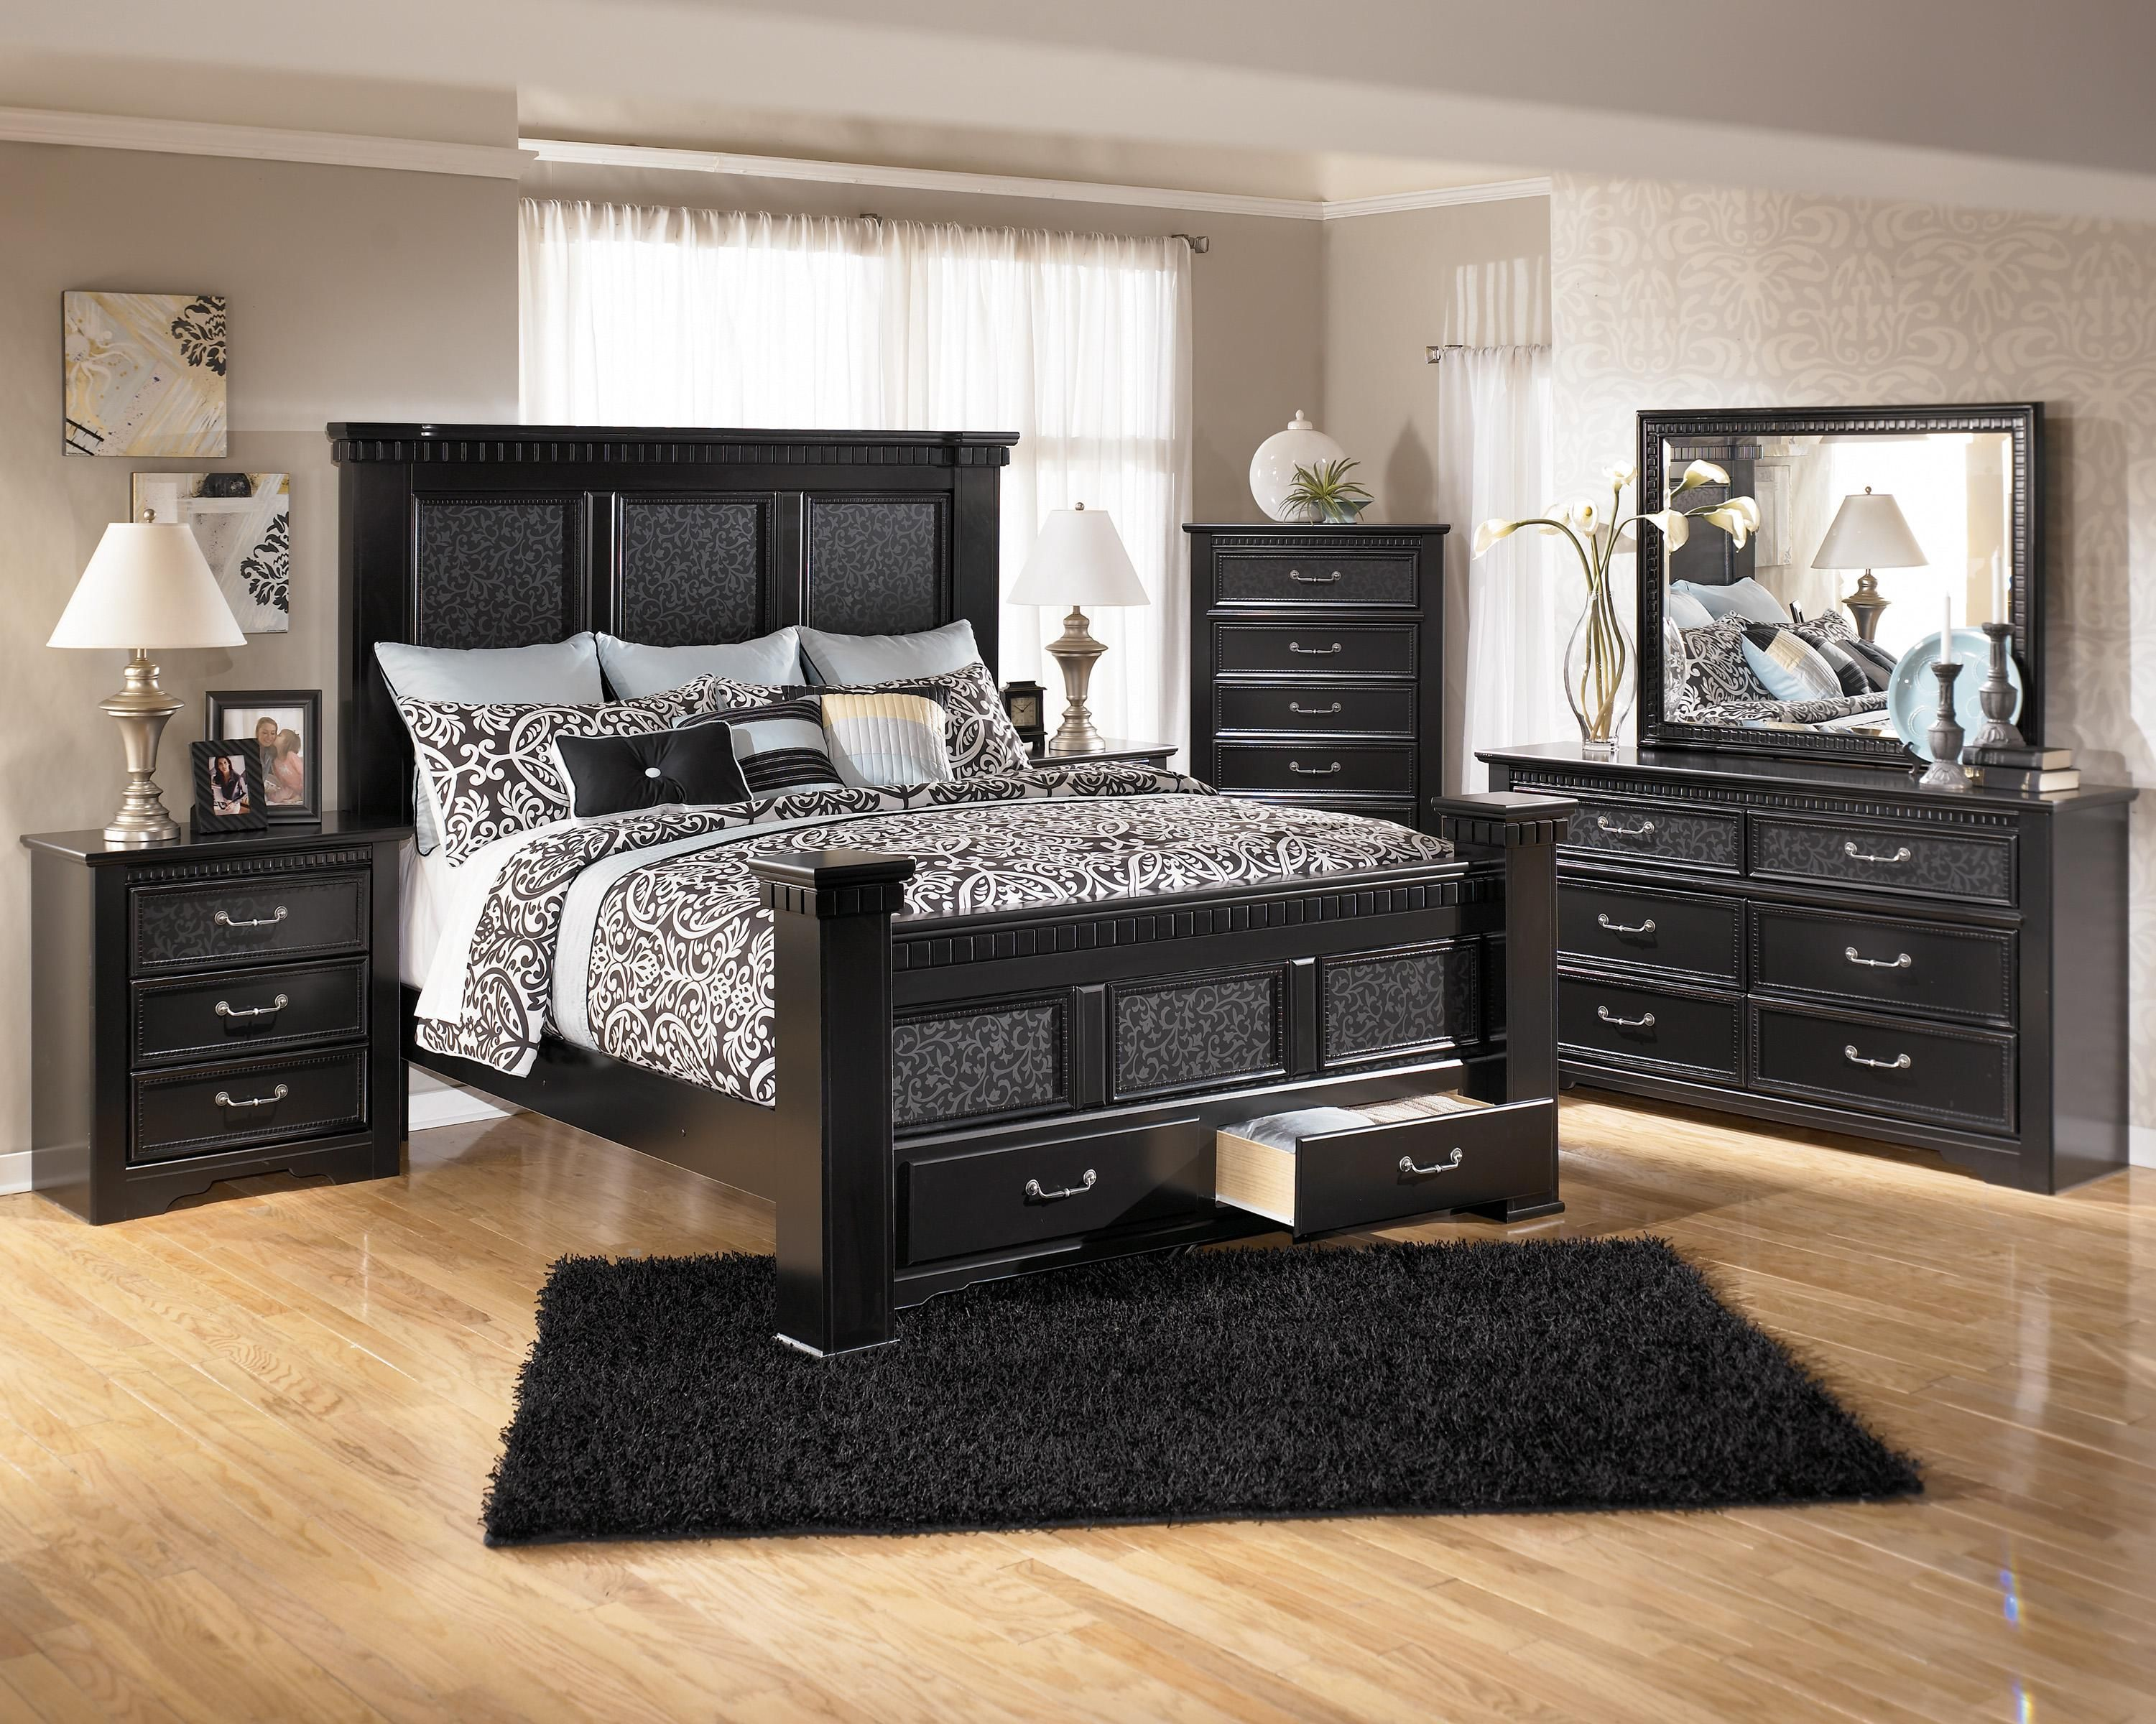 bedroom of brown king sets kids light under black furniture elegant artistic carving